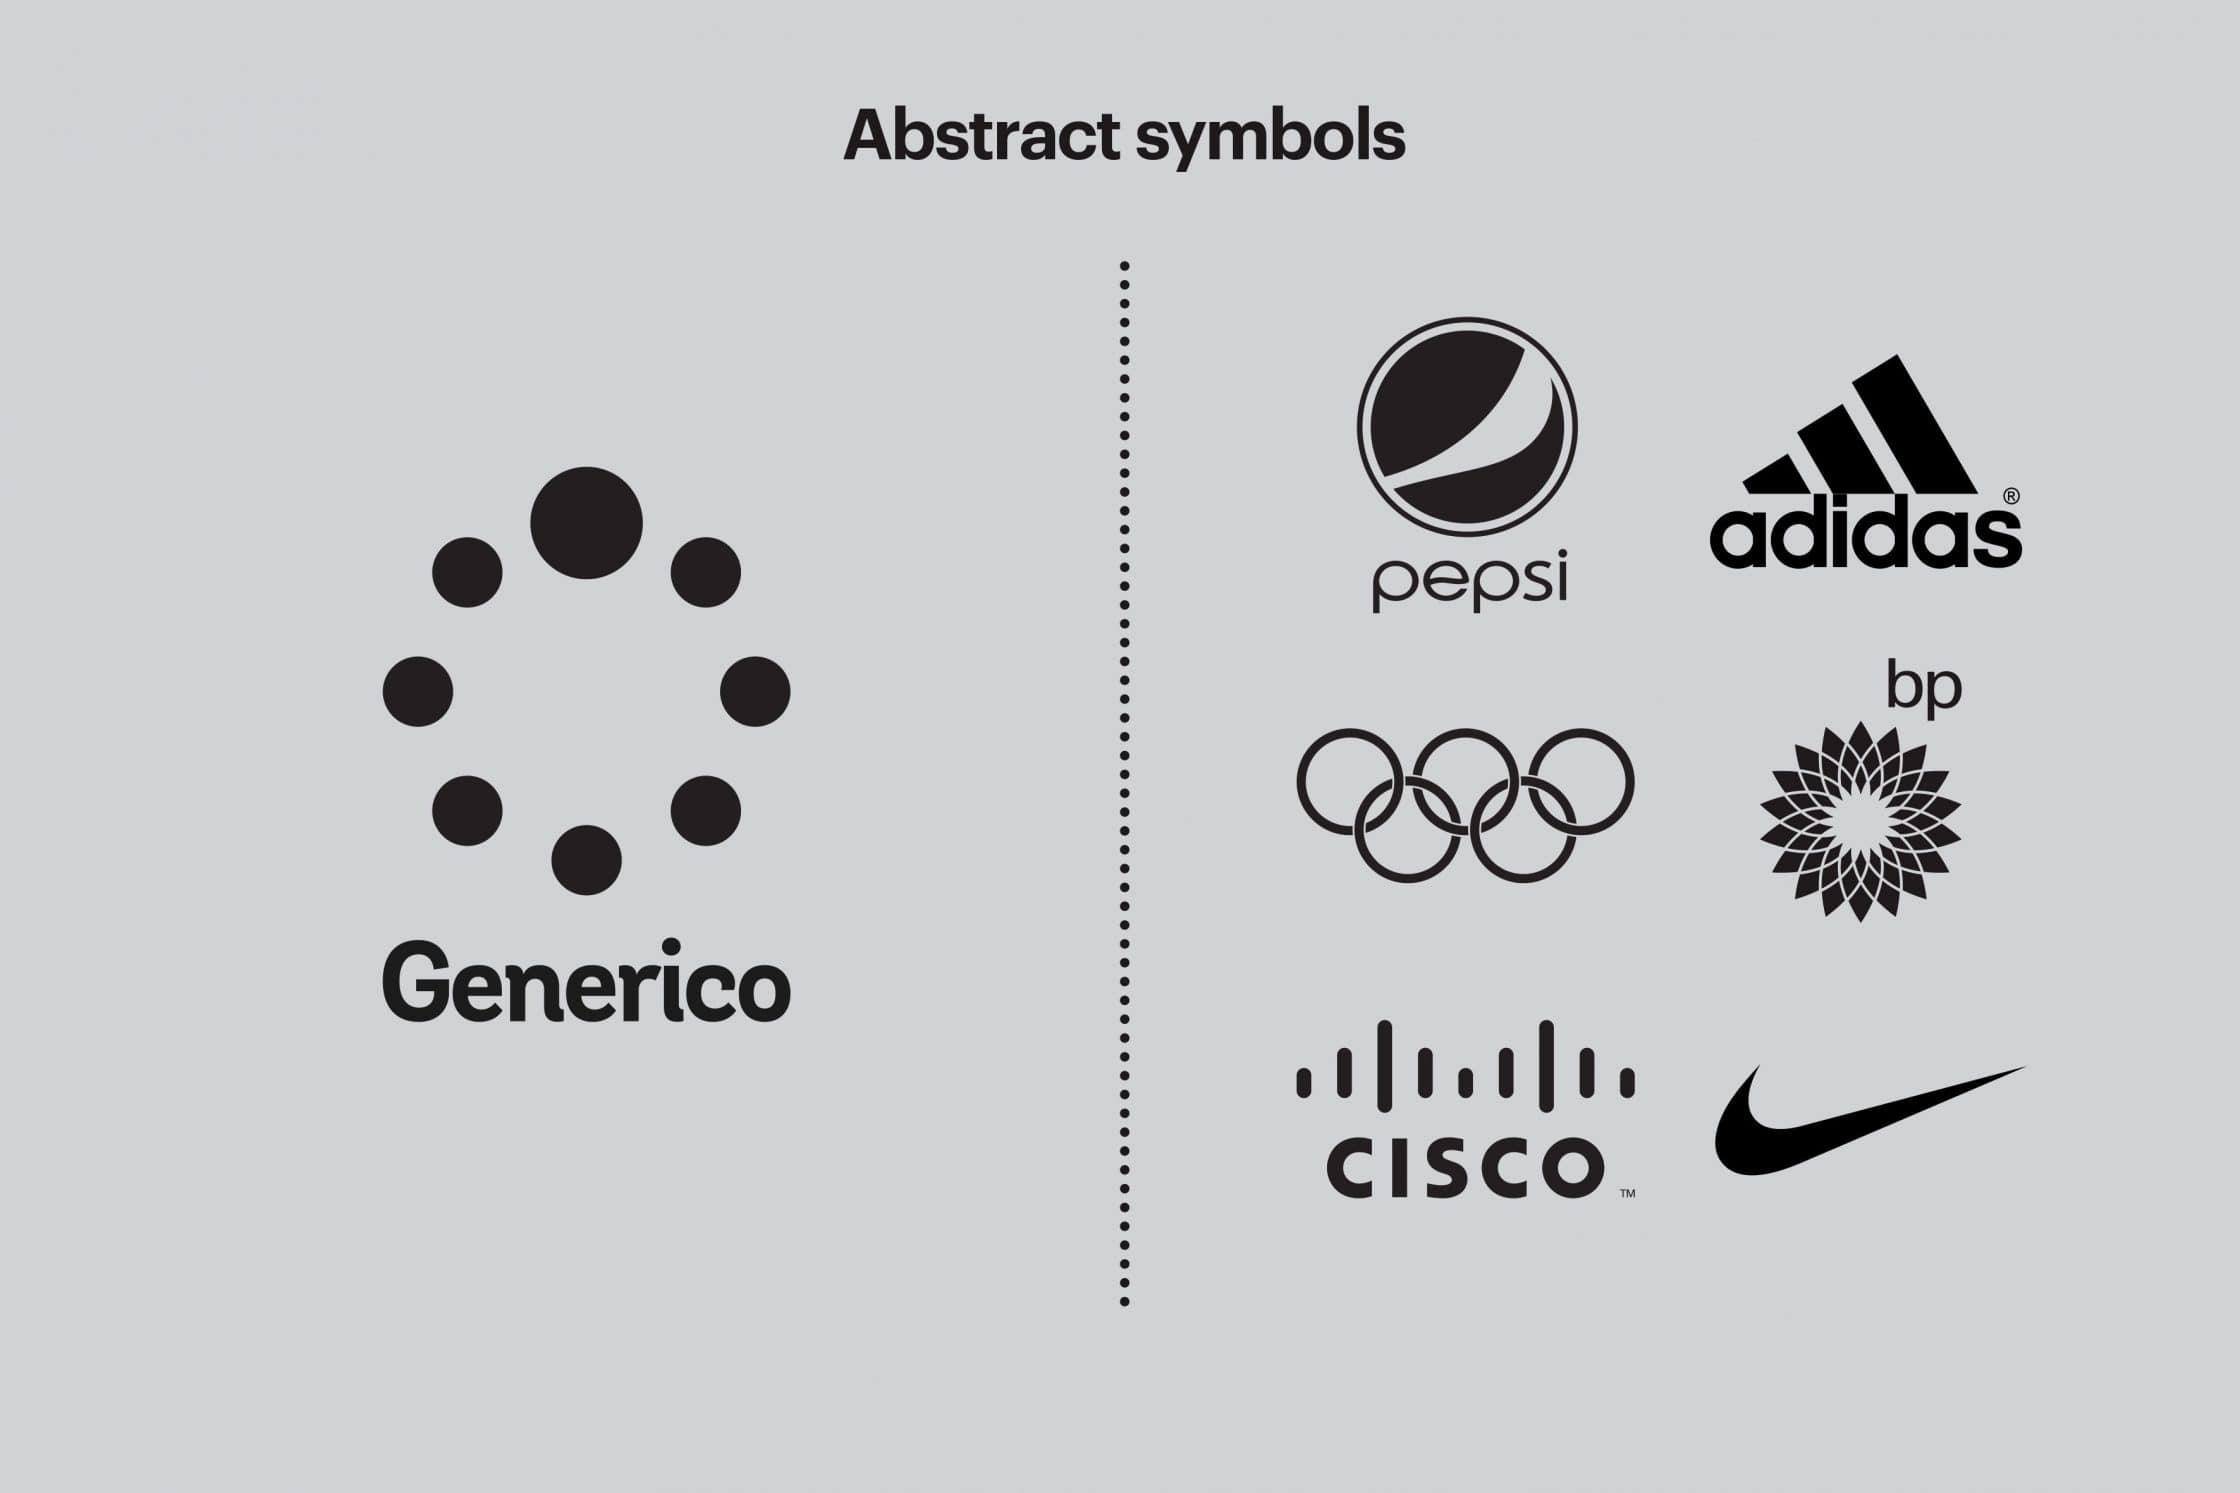 Example of abstract symbols used by Generico and known brands.